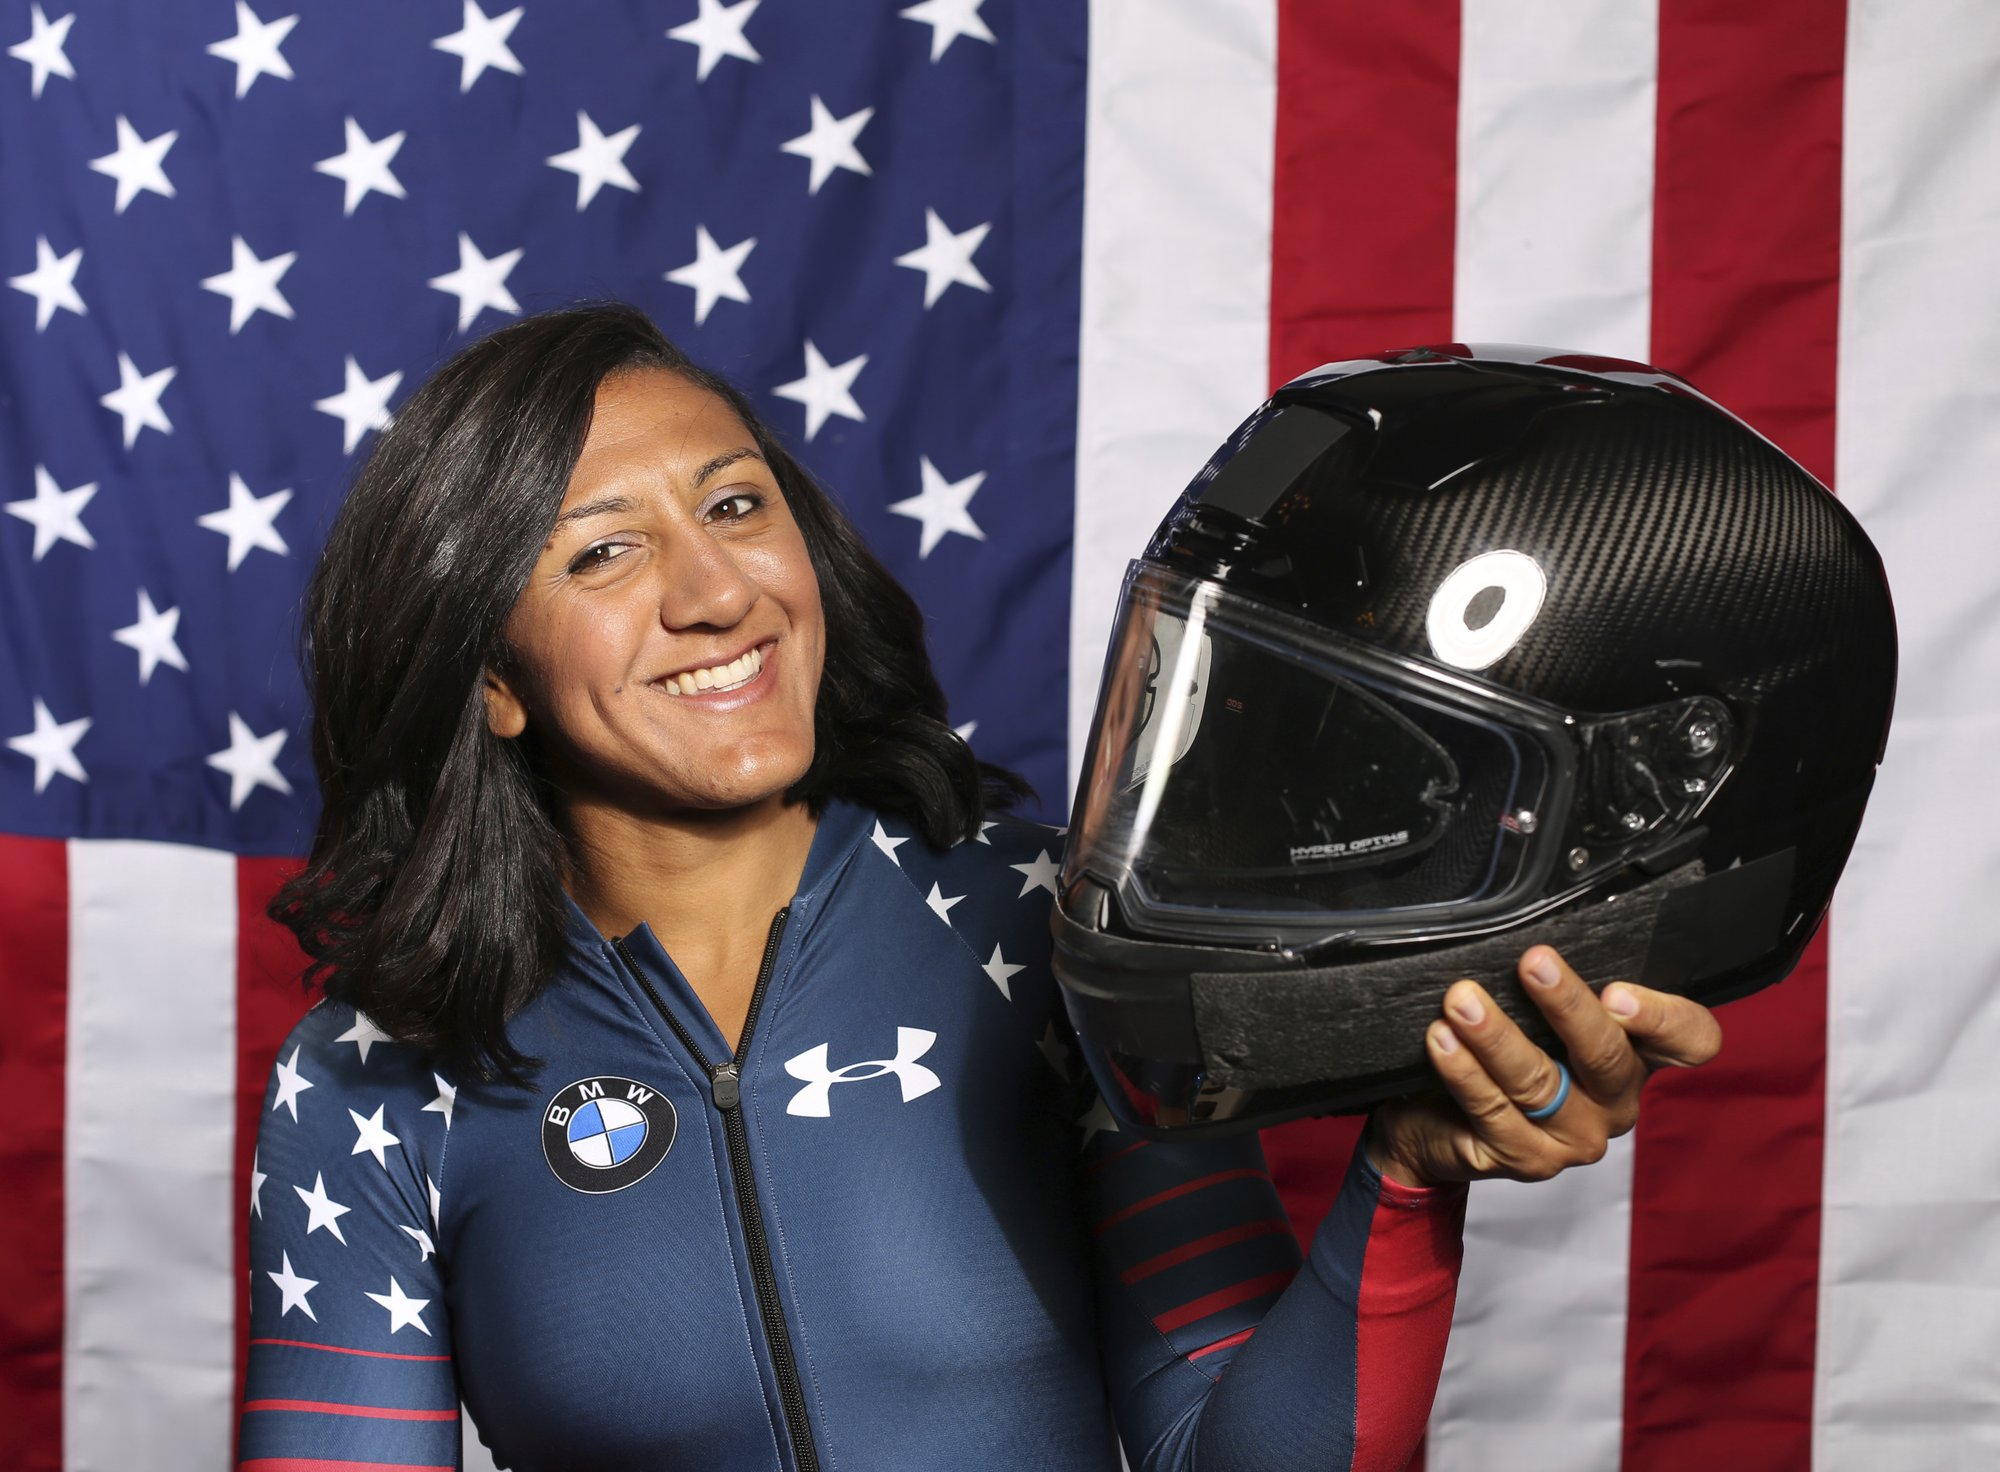 Humphries serves as forerunner at USA Bobsled push race